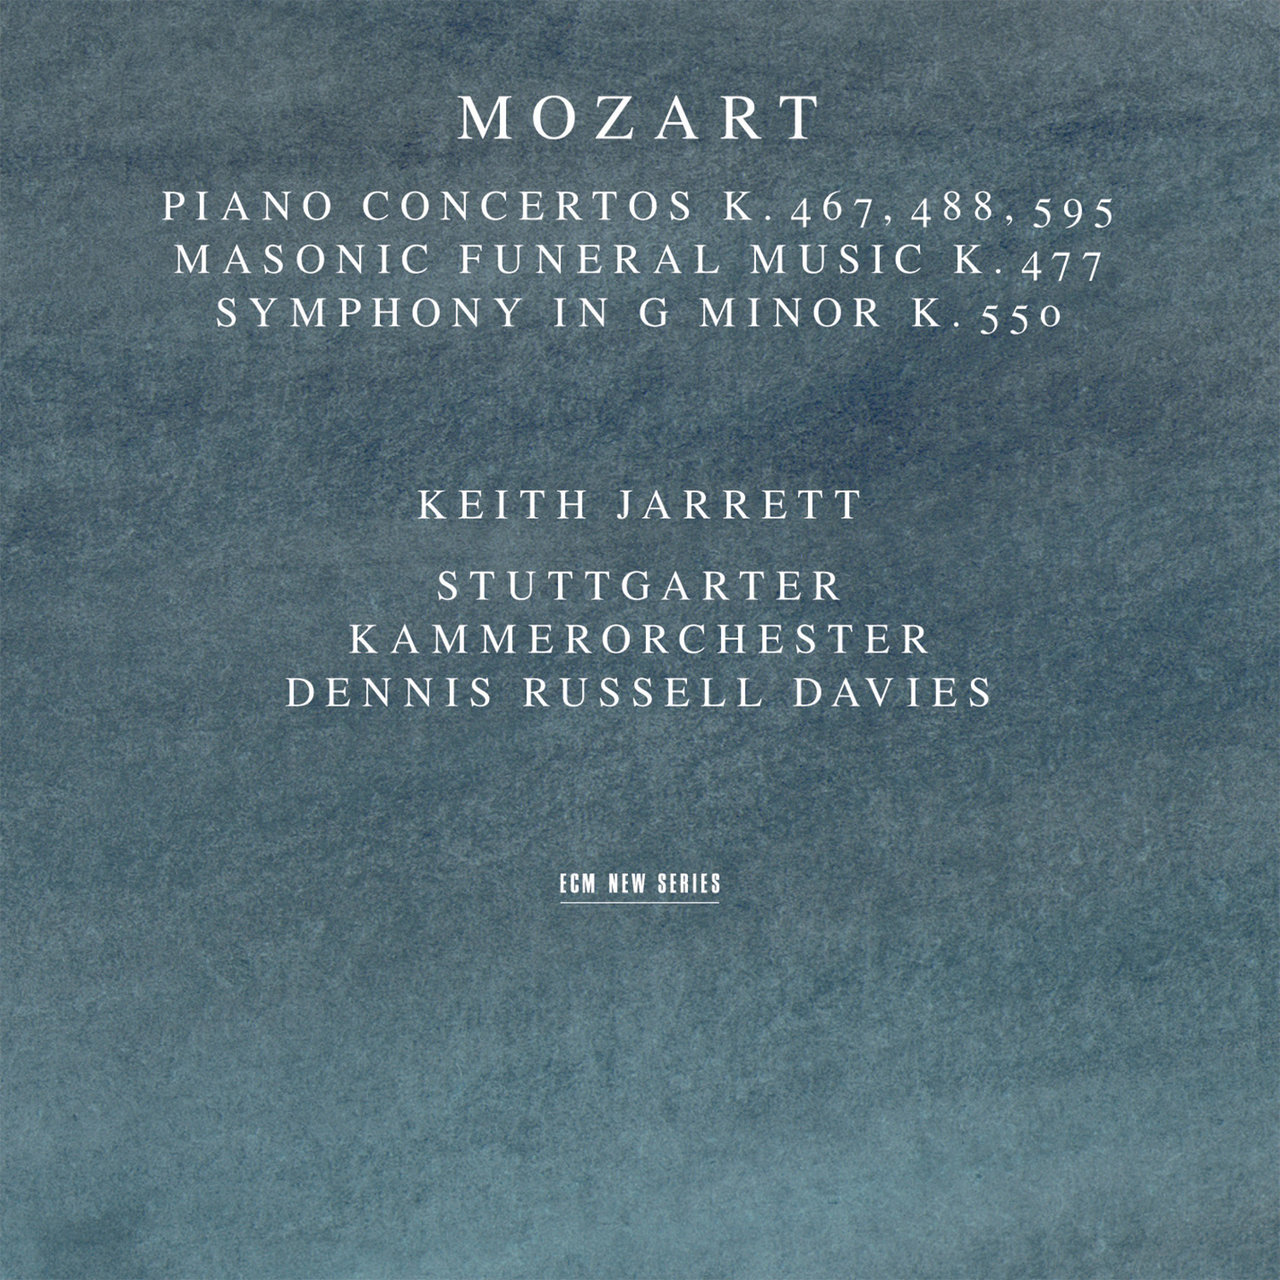 Mozart: Piano Concertos K. 467, 488, 595; Masonic Funeral Music, K. 477; Symphony In G Minor, K. 550